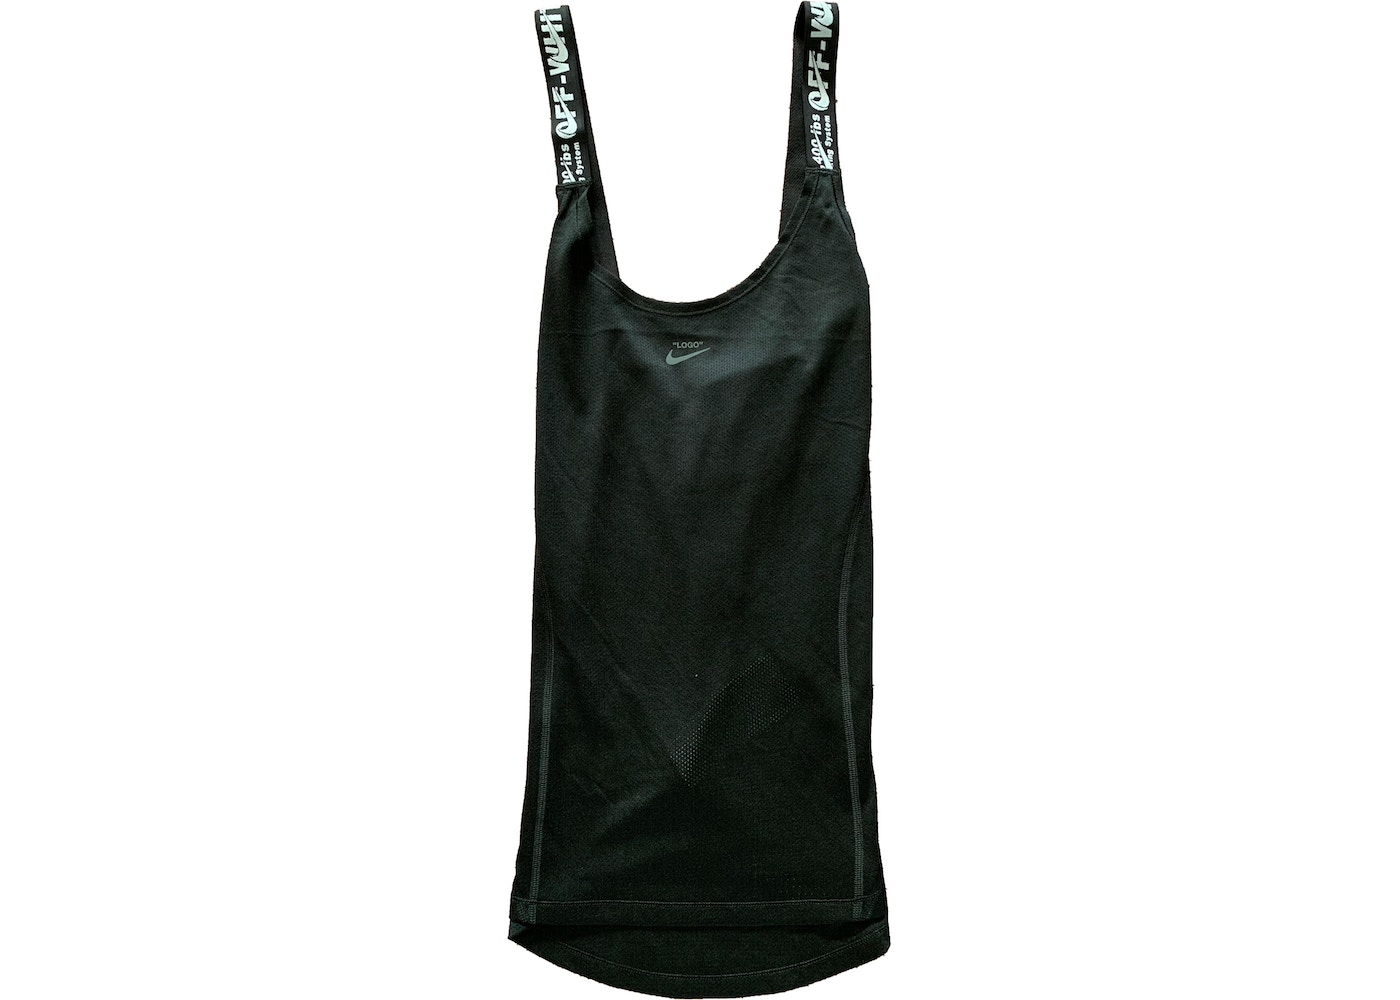 Hedendaags OFF-WHITE Nike Women's Tank Top Black - FW19 DQ-23